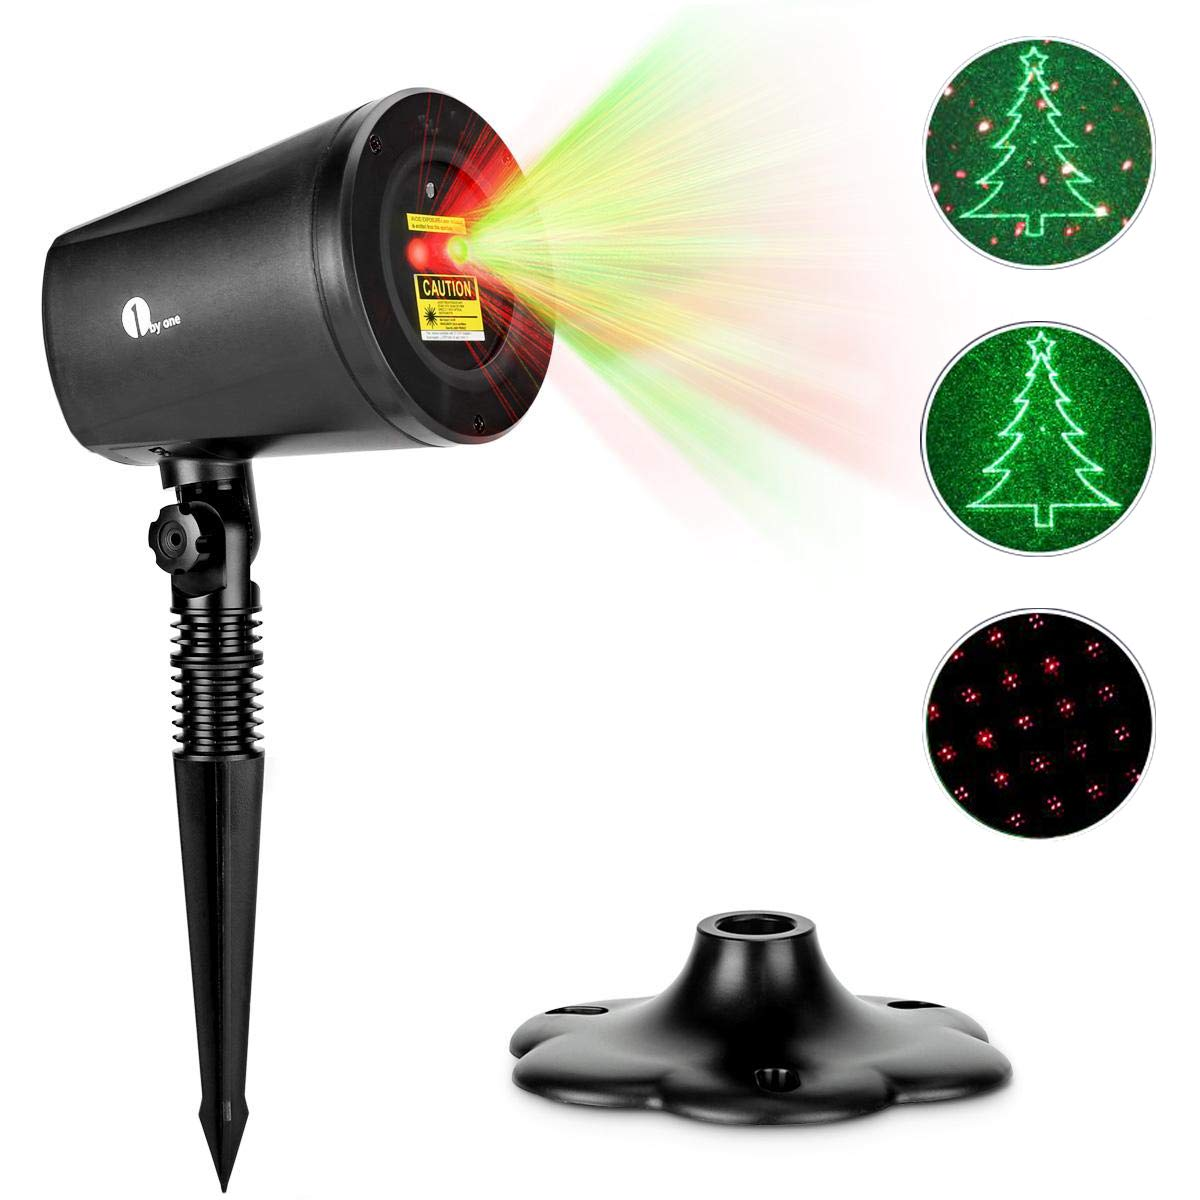 1byone Garden Laser Light Projector Christmas Lamp IP65 Waterproof Moving Rotating Flash RGB Green Christmas Tree and Red Stars for Xmas Holiday Halloween Party Landscape Indoor Outdoor Decoration